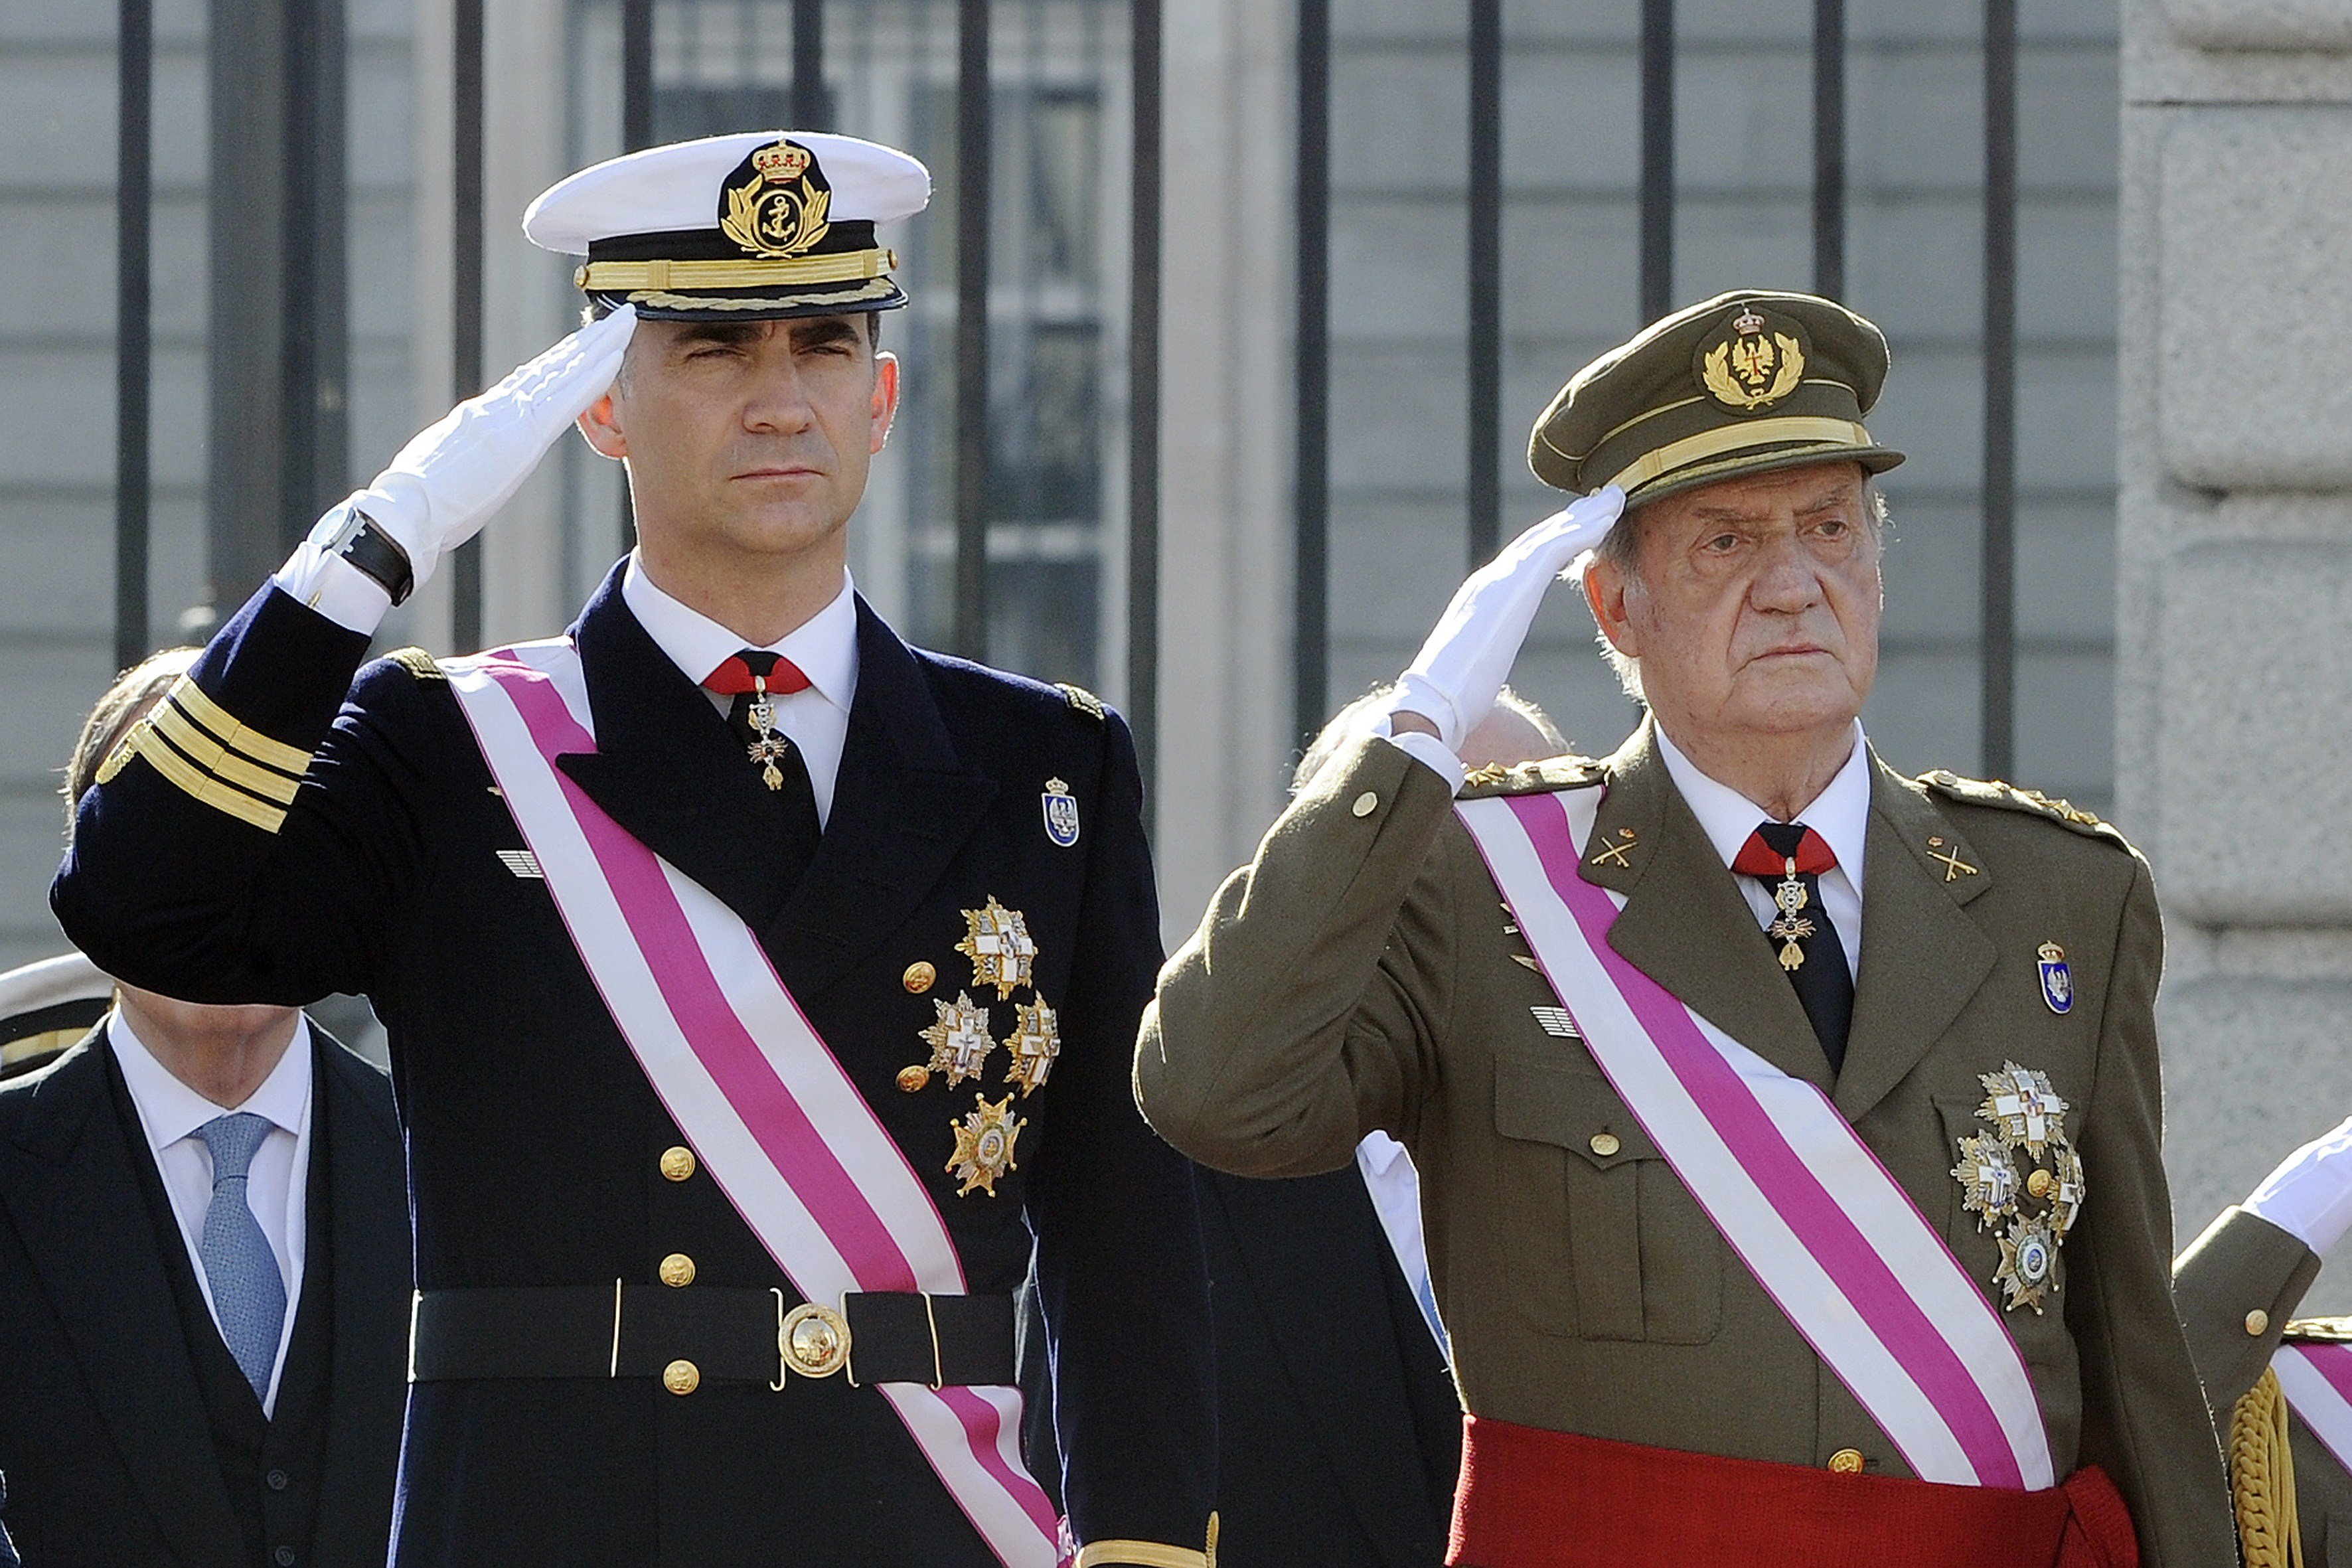 Spain's Crown Prince Felipe and Spain's King Juan Carlos salute Spain's Queen Sofia during the Pascua Militar ceremony at the Royal Palace in Madrid on January 6, 2014.